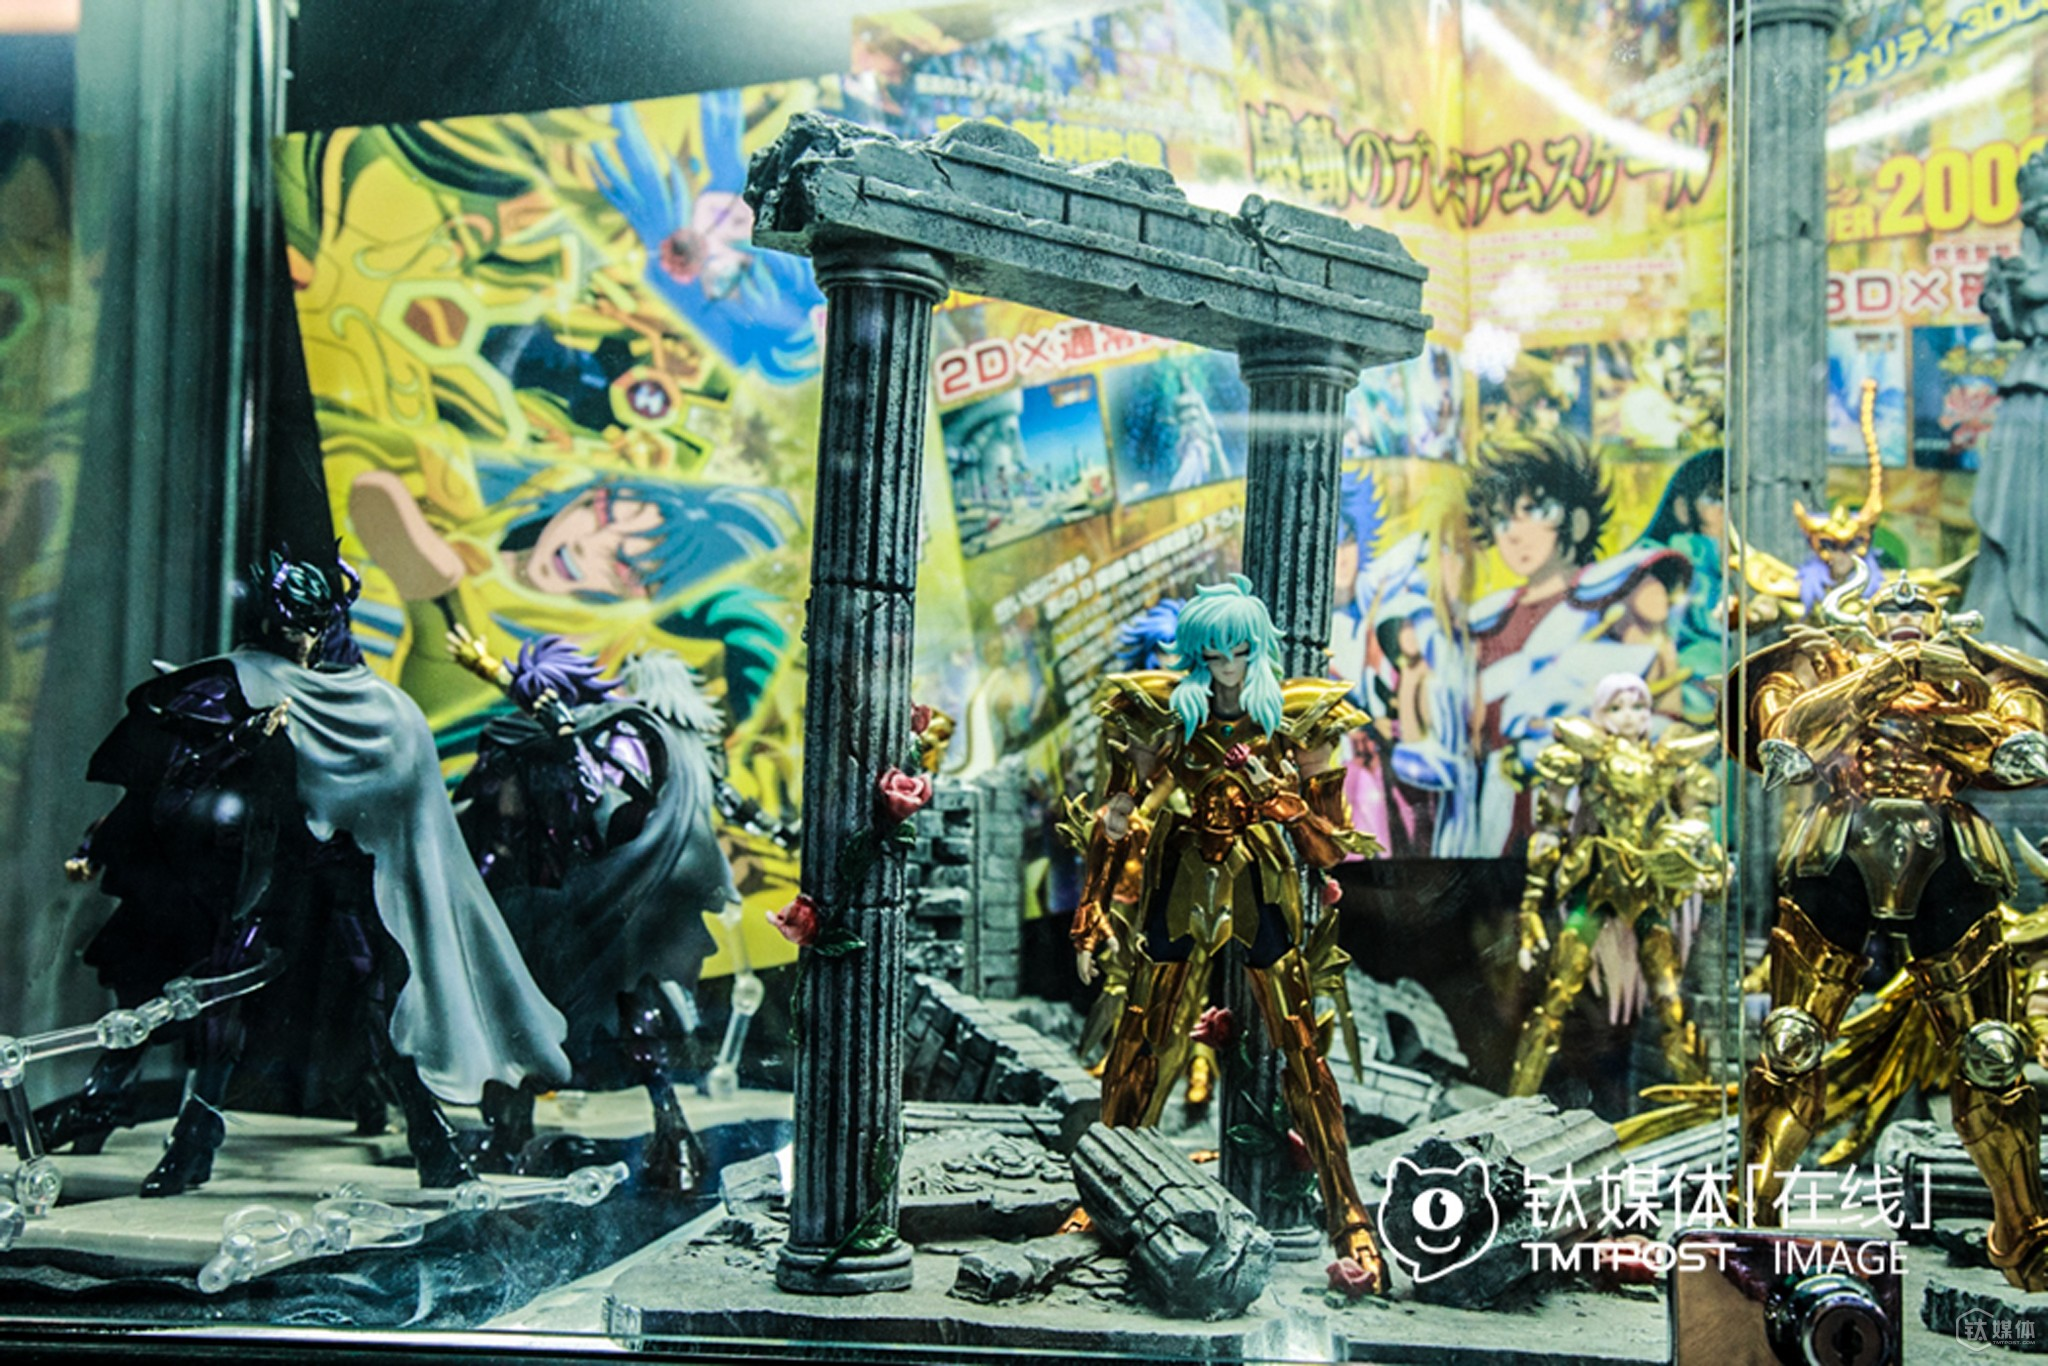 These models were hand-made of resin, and priced at a couple thousand RMB each. However, most cosers were students who could't afford such luxury. So buyers of these models are mostly adults who wanted to buy these stuffs to pay tribute to the past days.